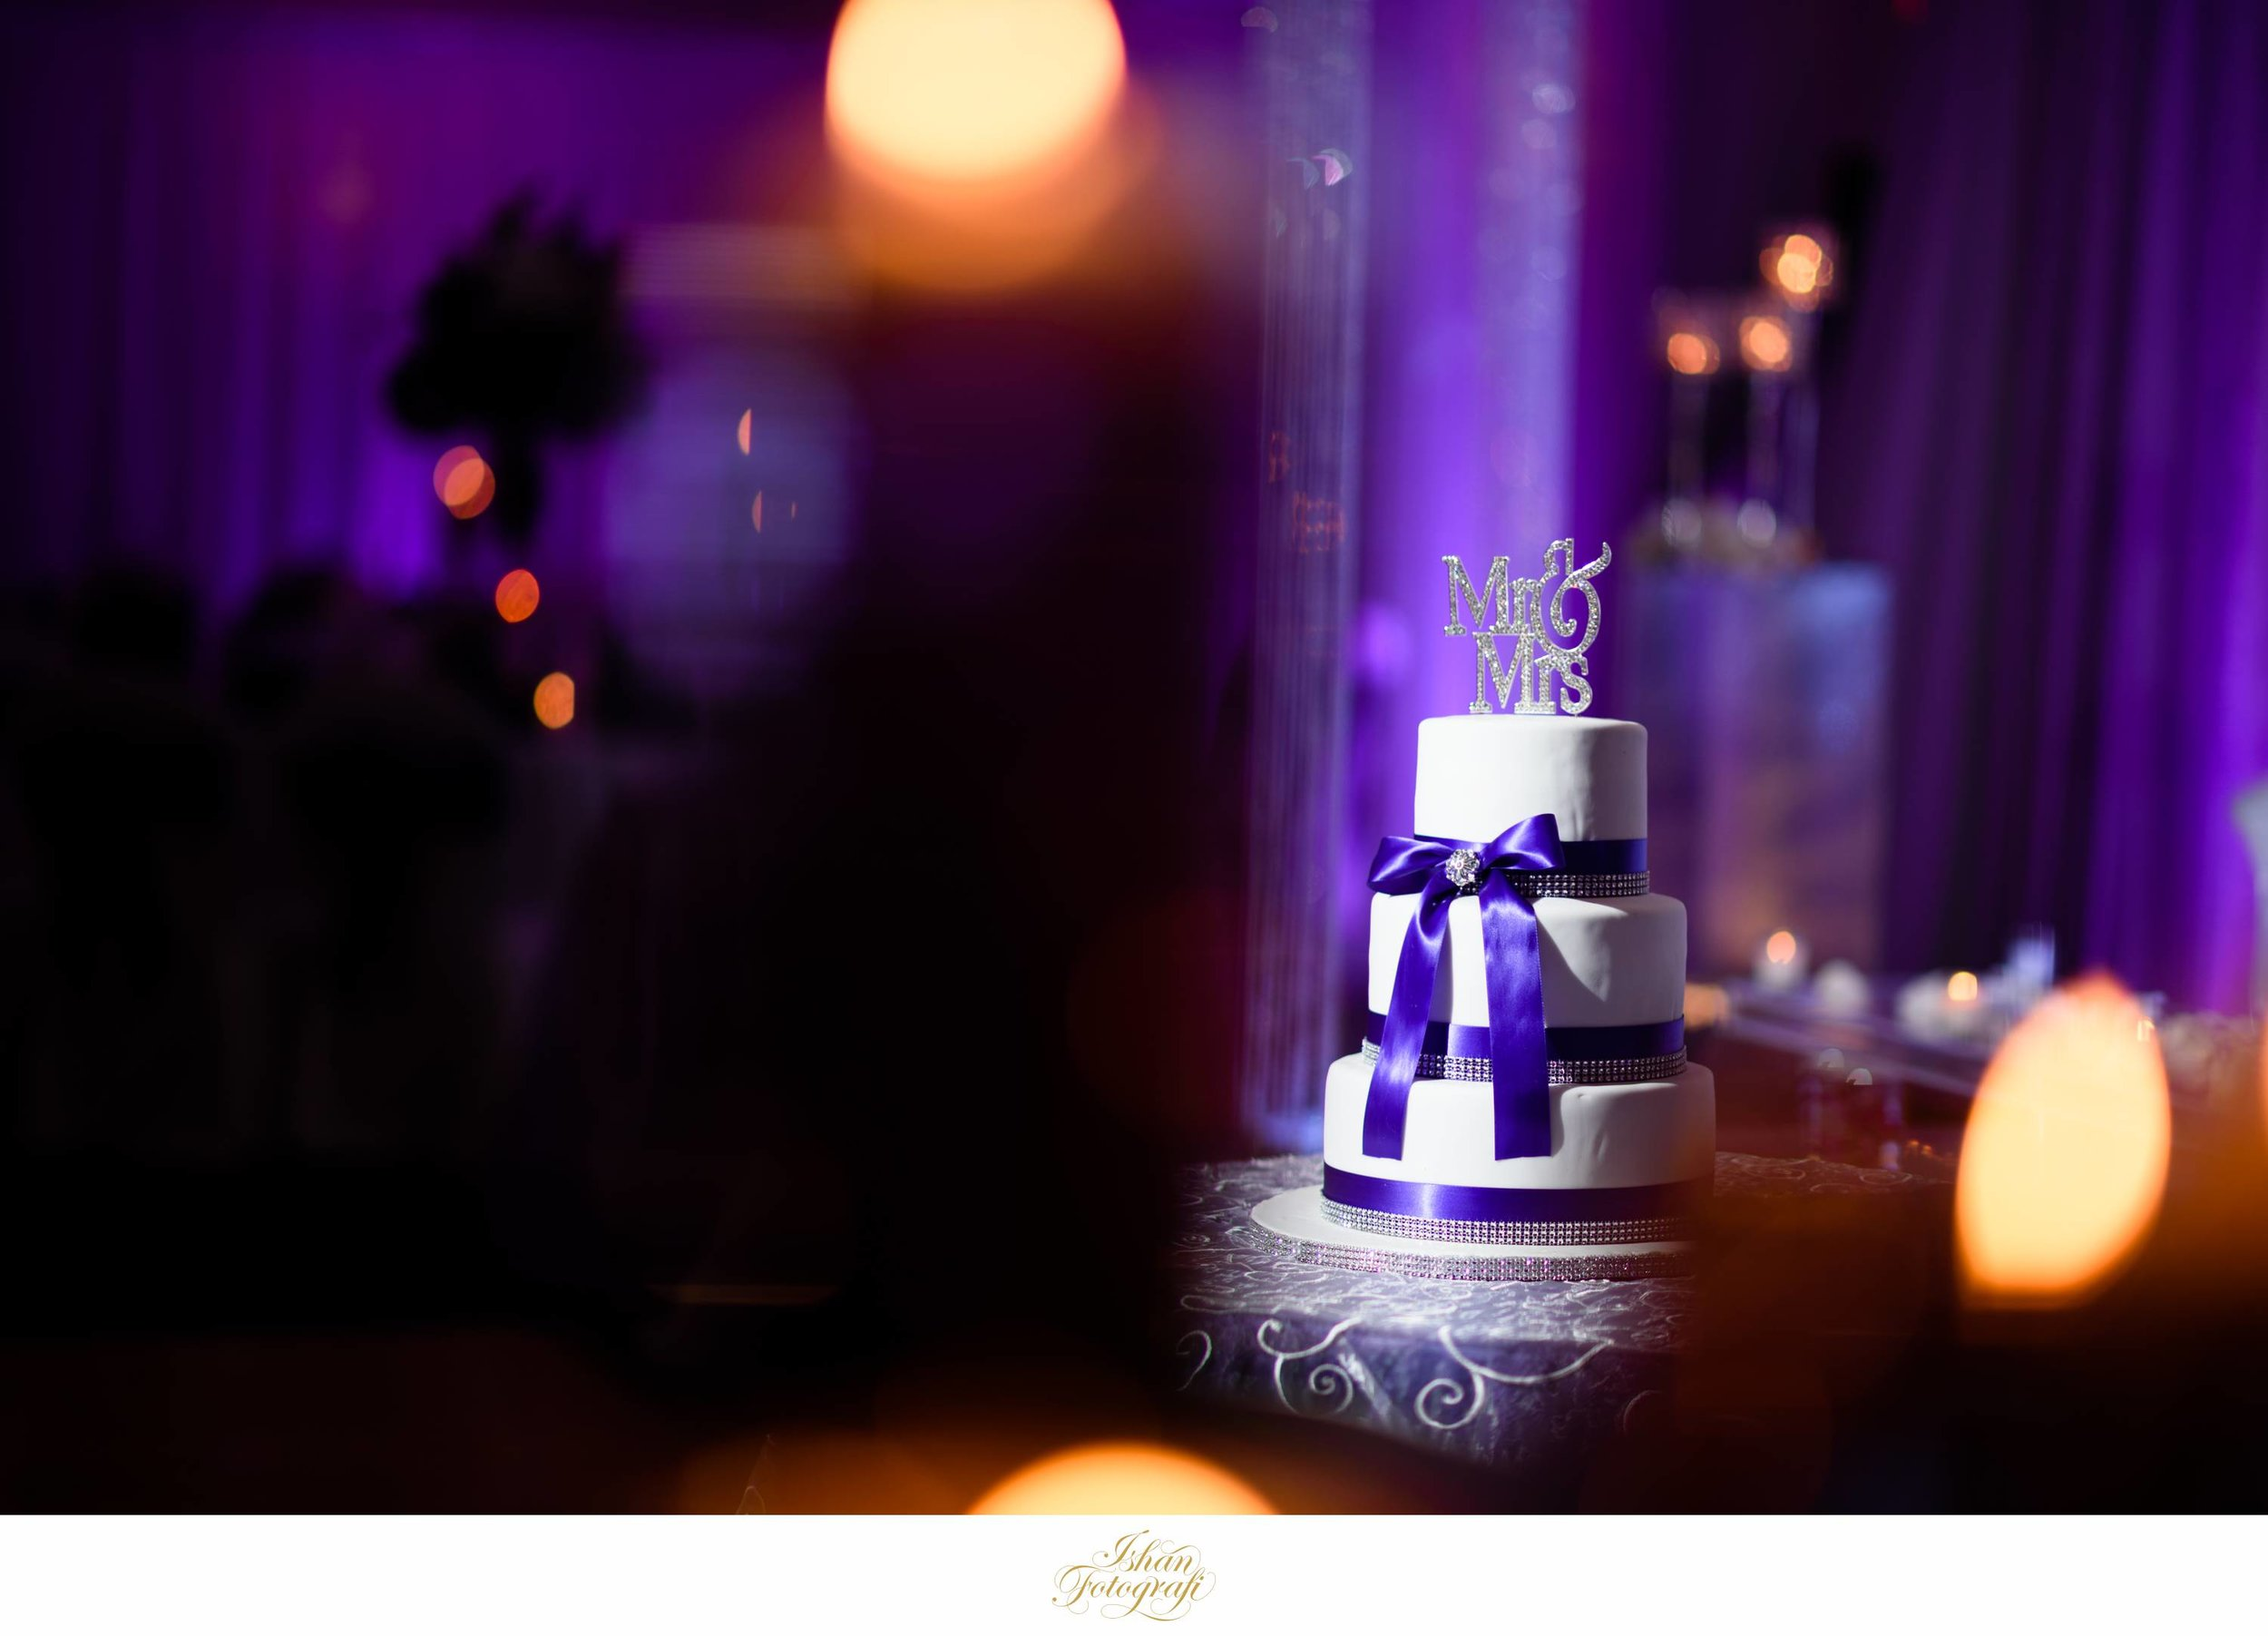 The wedding cake was subtle and matched the brides primary dress color for the evening look.